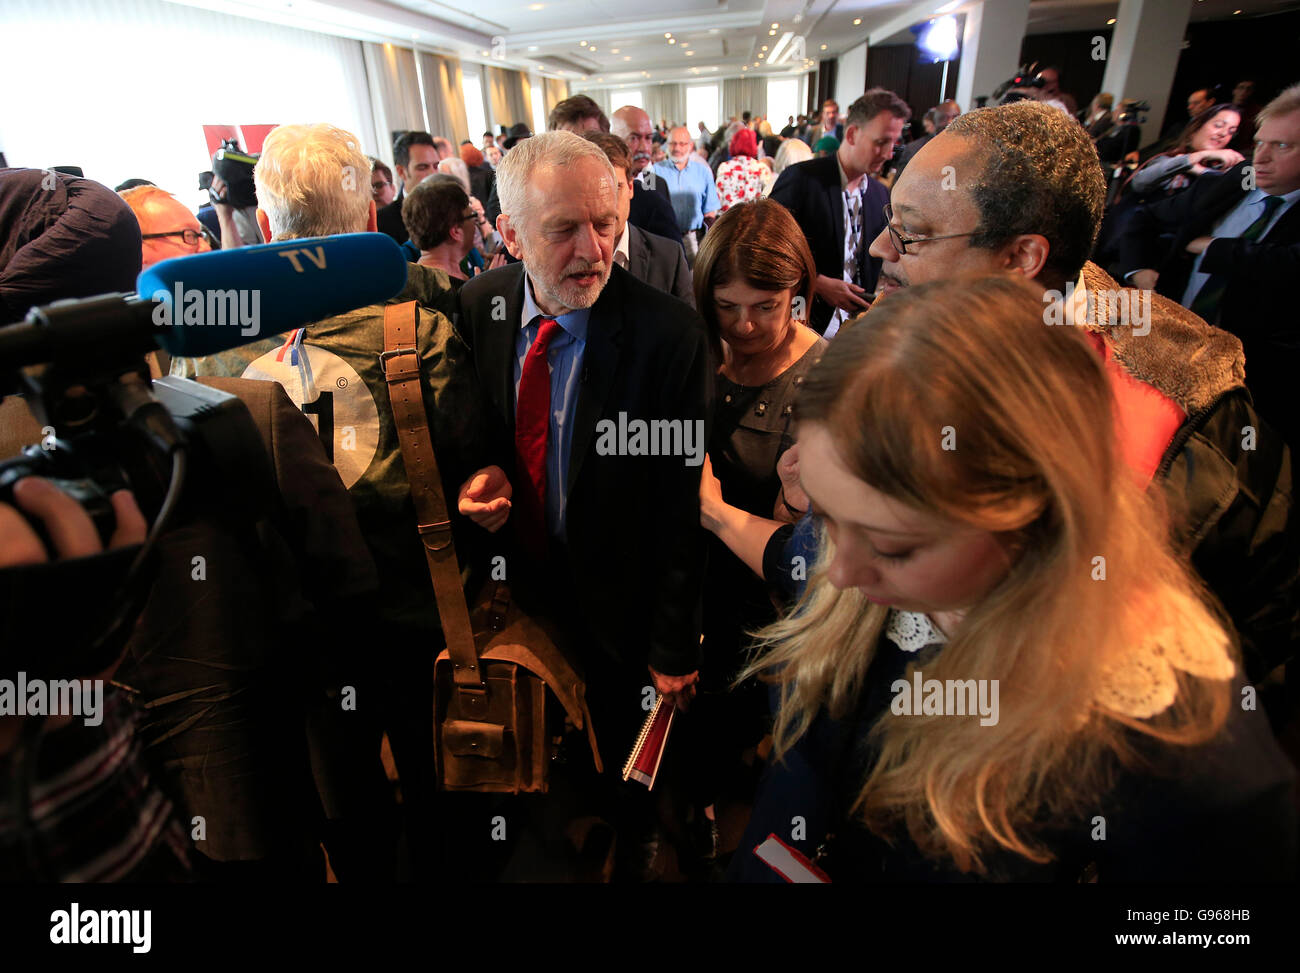 Labour Leader Jeremy Corbyn with Marc Wadswort, who runs Momentum Black Connexions, following a speech on Labour's - Stock Image